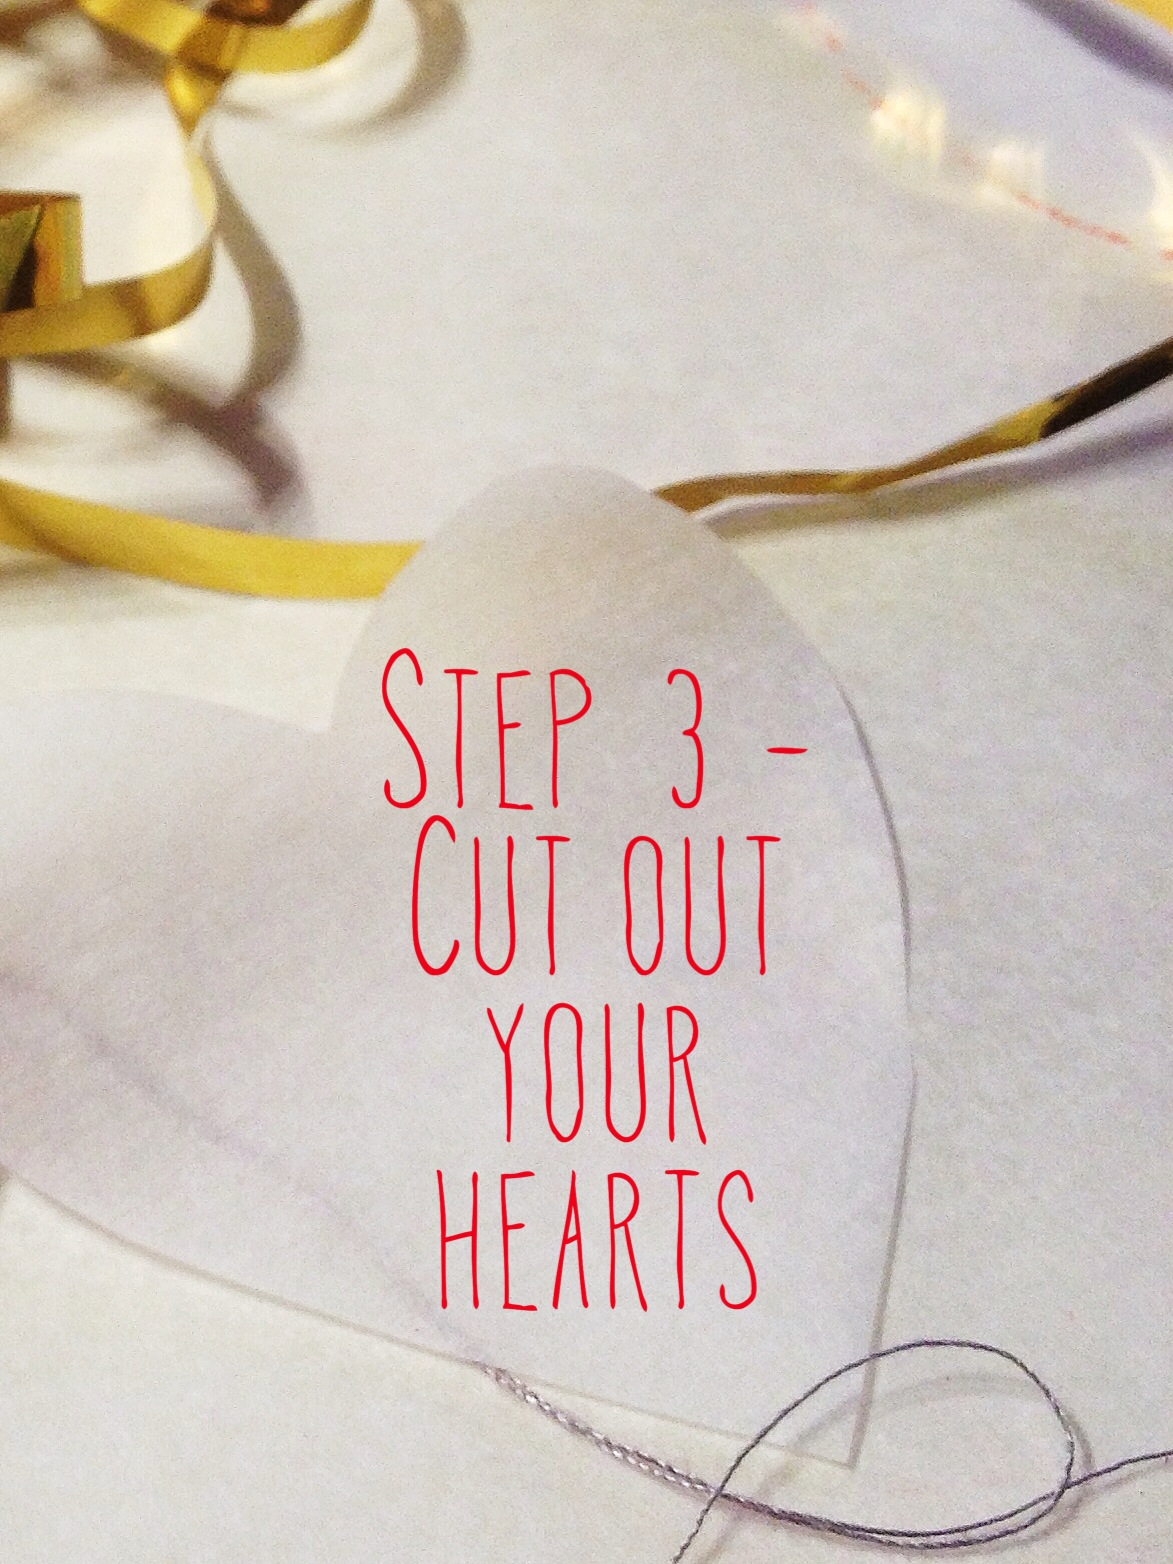 Step 3 - Cut out your hearts - DIY paper heart garland